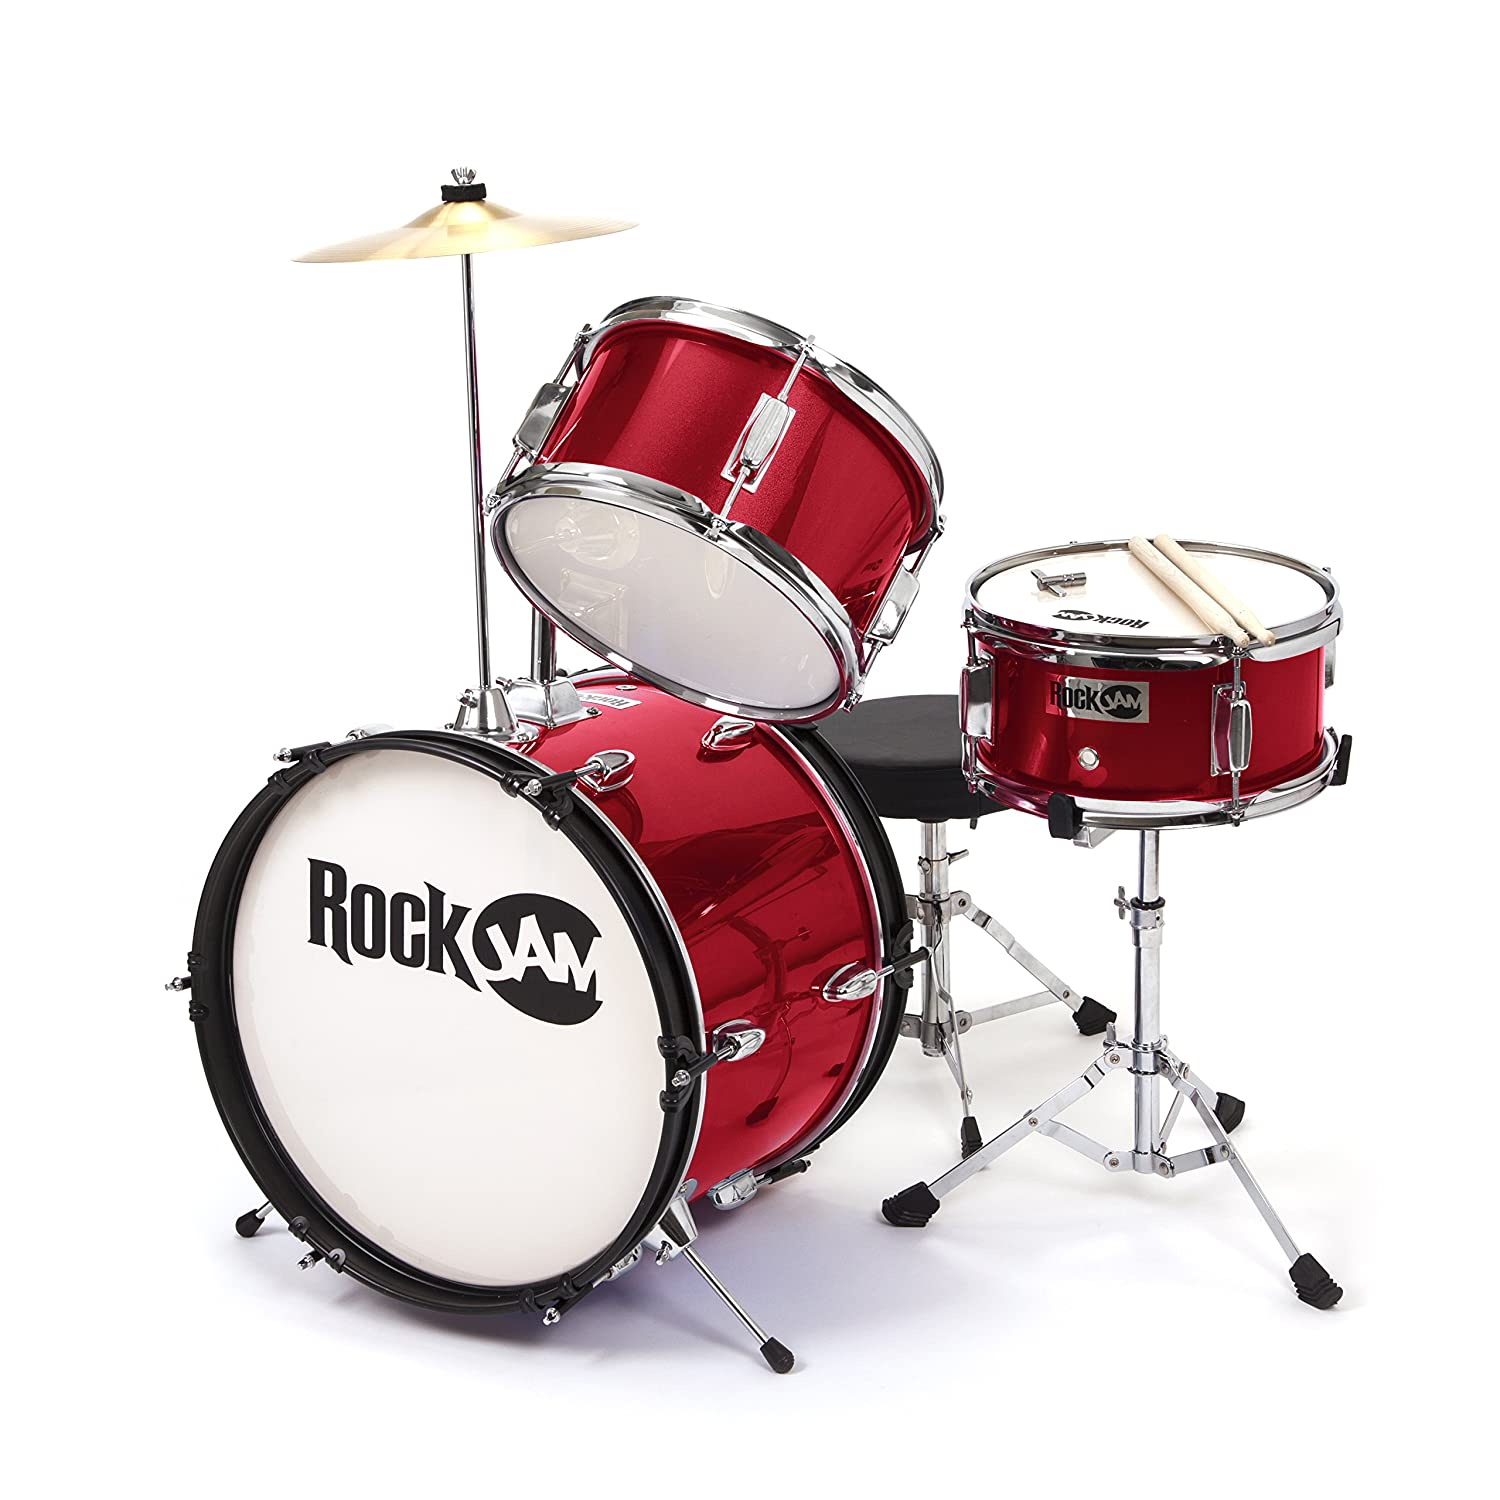 RockJam 3 Piece Junior Drum Set With Crash Cymbal Drumsticks Adjustable Throne And Accessories